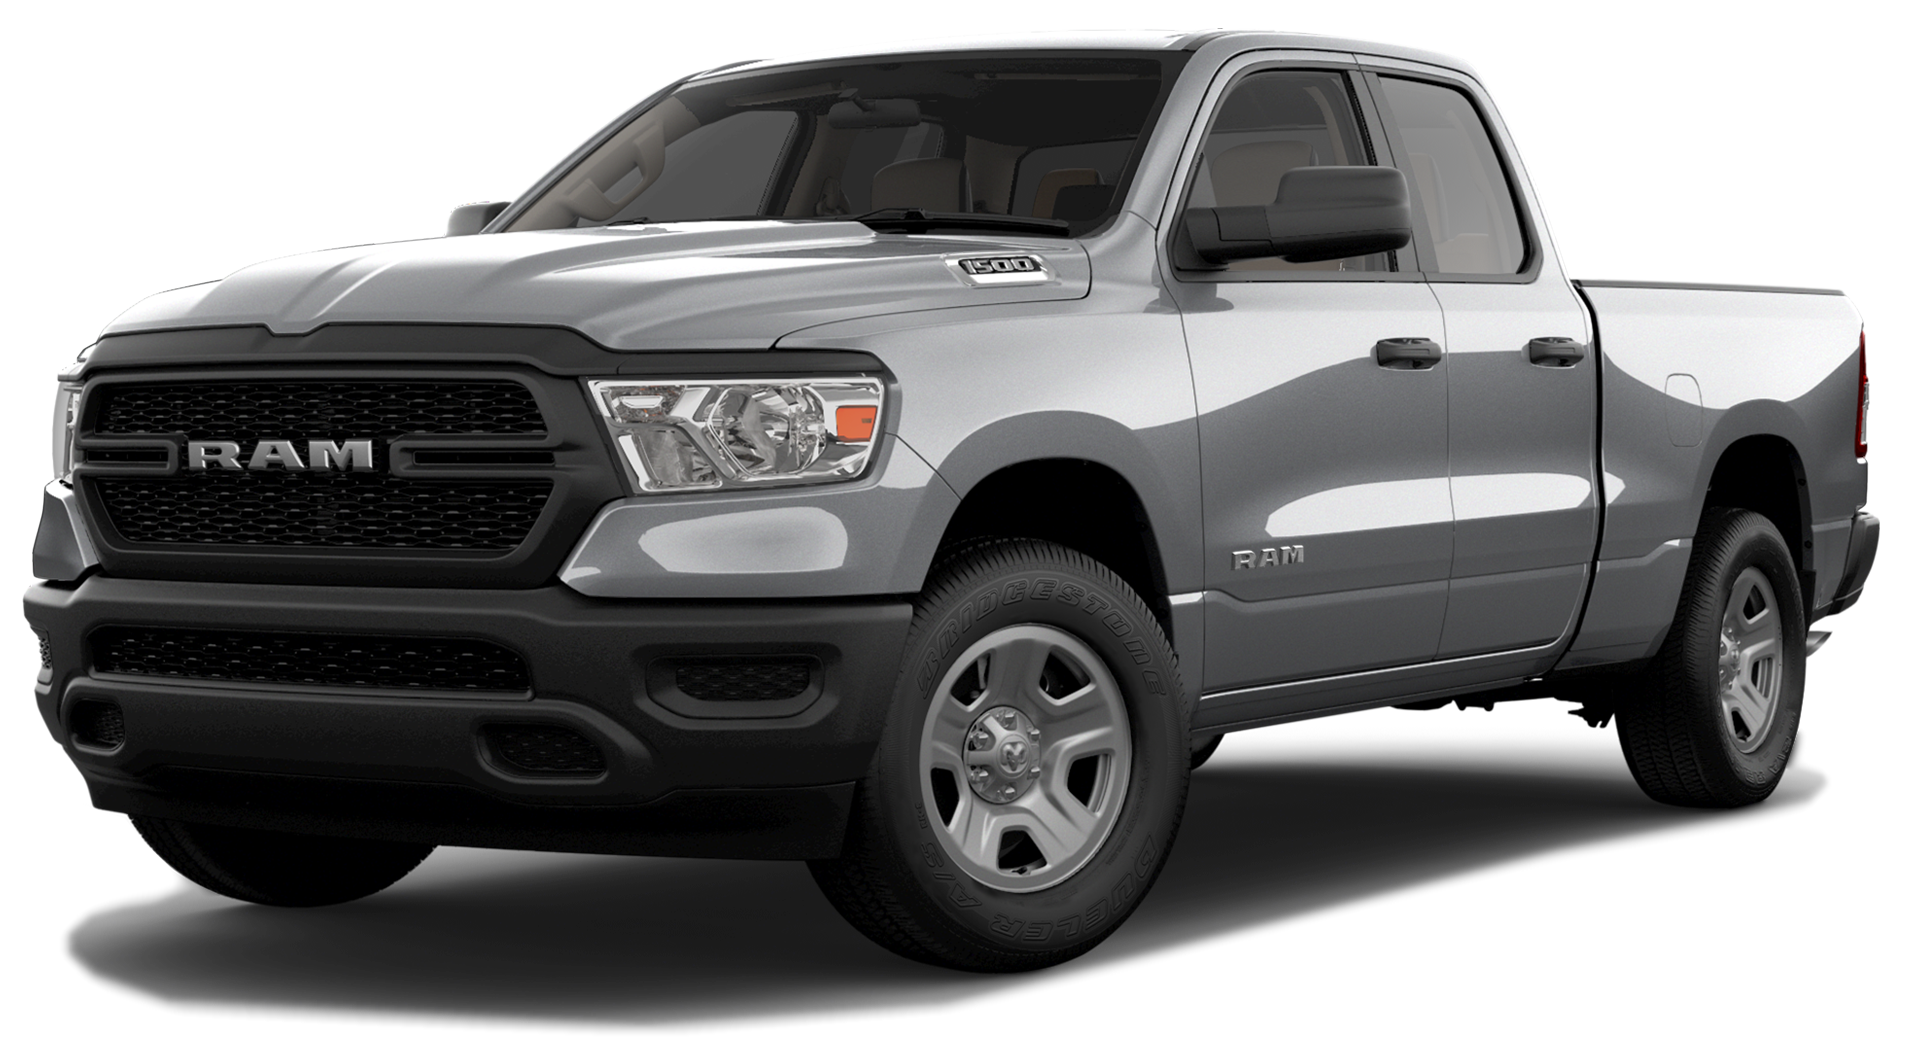 Review & Compare Ram 1500 at Larry H. Miller Dodge Ram Peoria